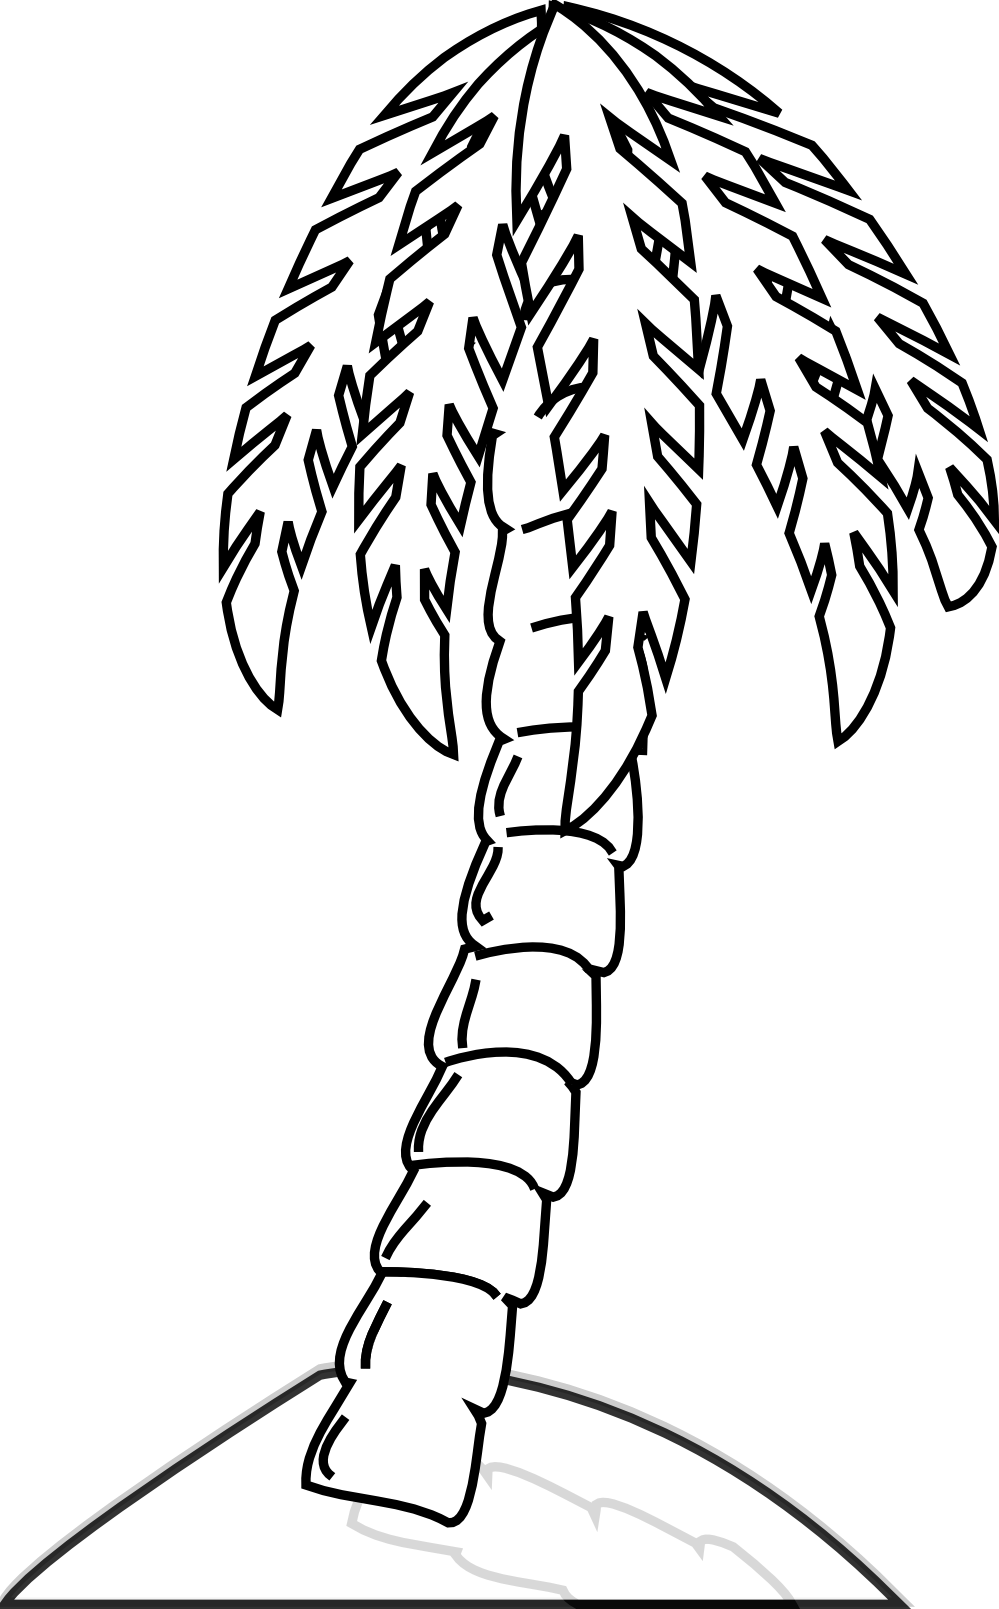 Tree house clipart black and white image black and white stock clipart orange palm tree black and white - Clipground image black and white stock